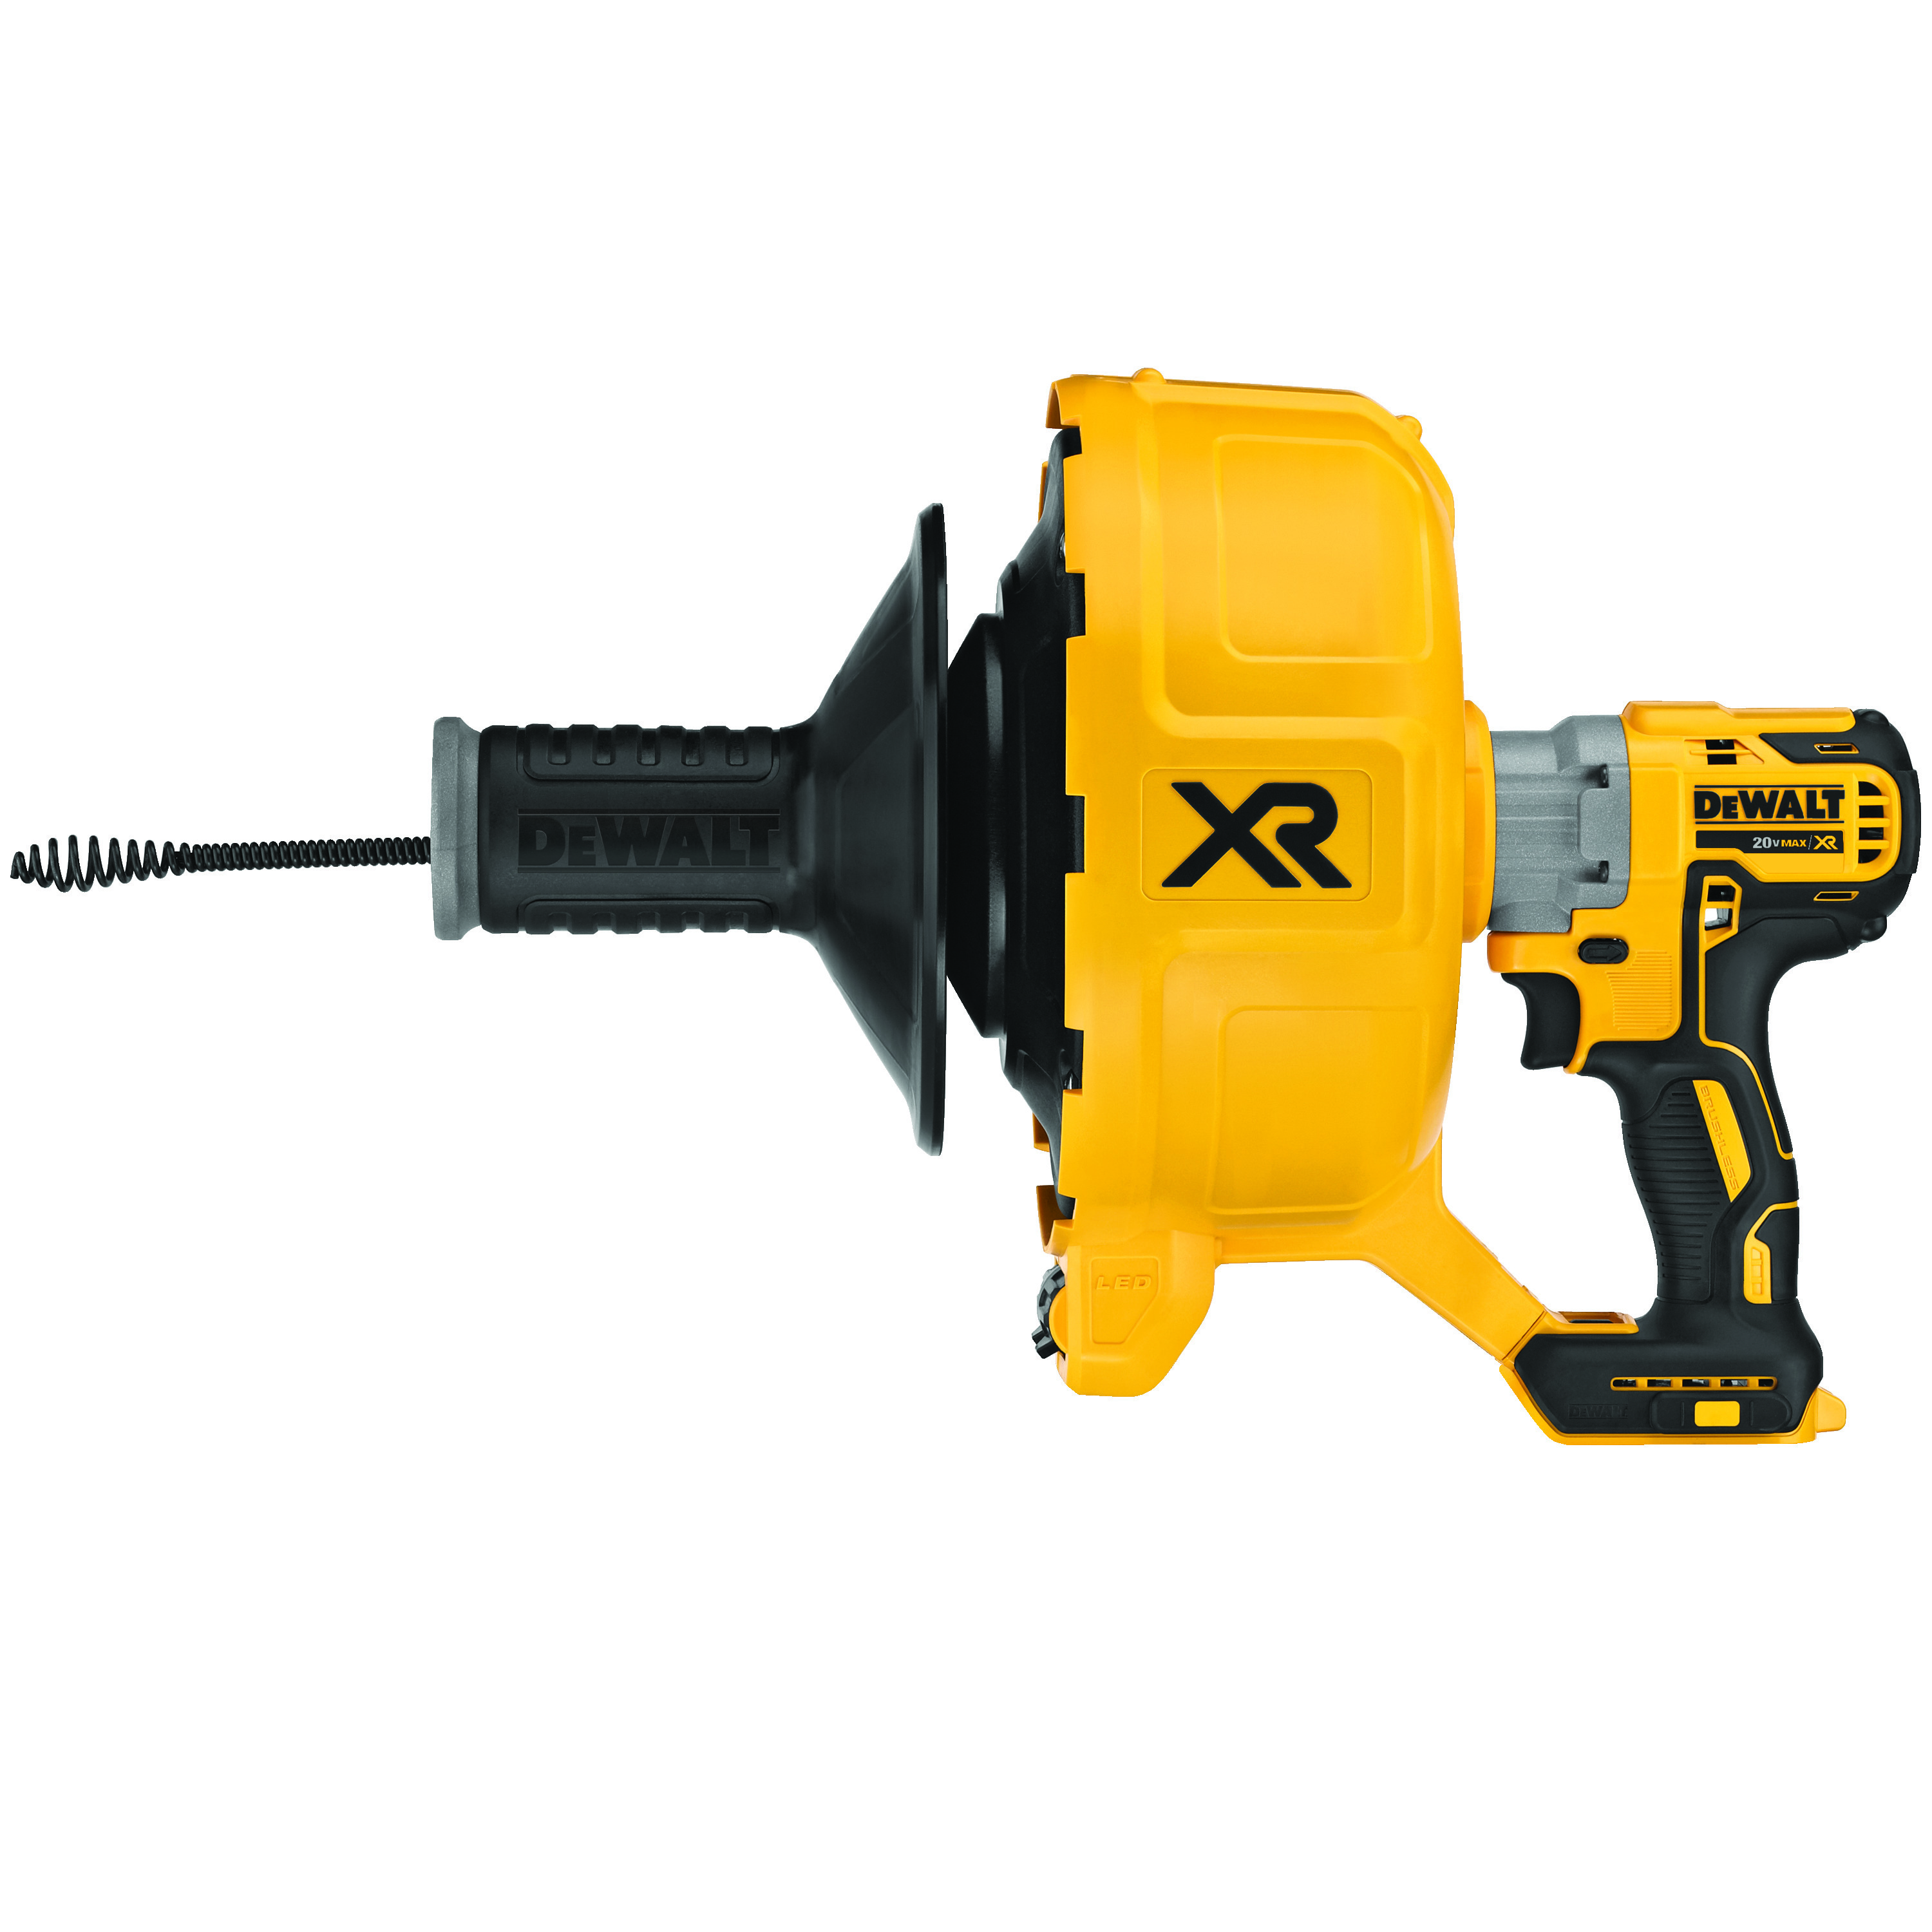 DeWALT® XR® DCD200B Brushless Cordless Drain Snake Tool, 3/8 to 3 in Drain Line, 50 ft Max Run, 20 VDC